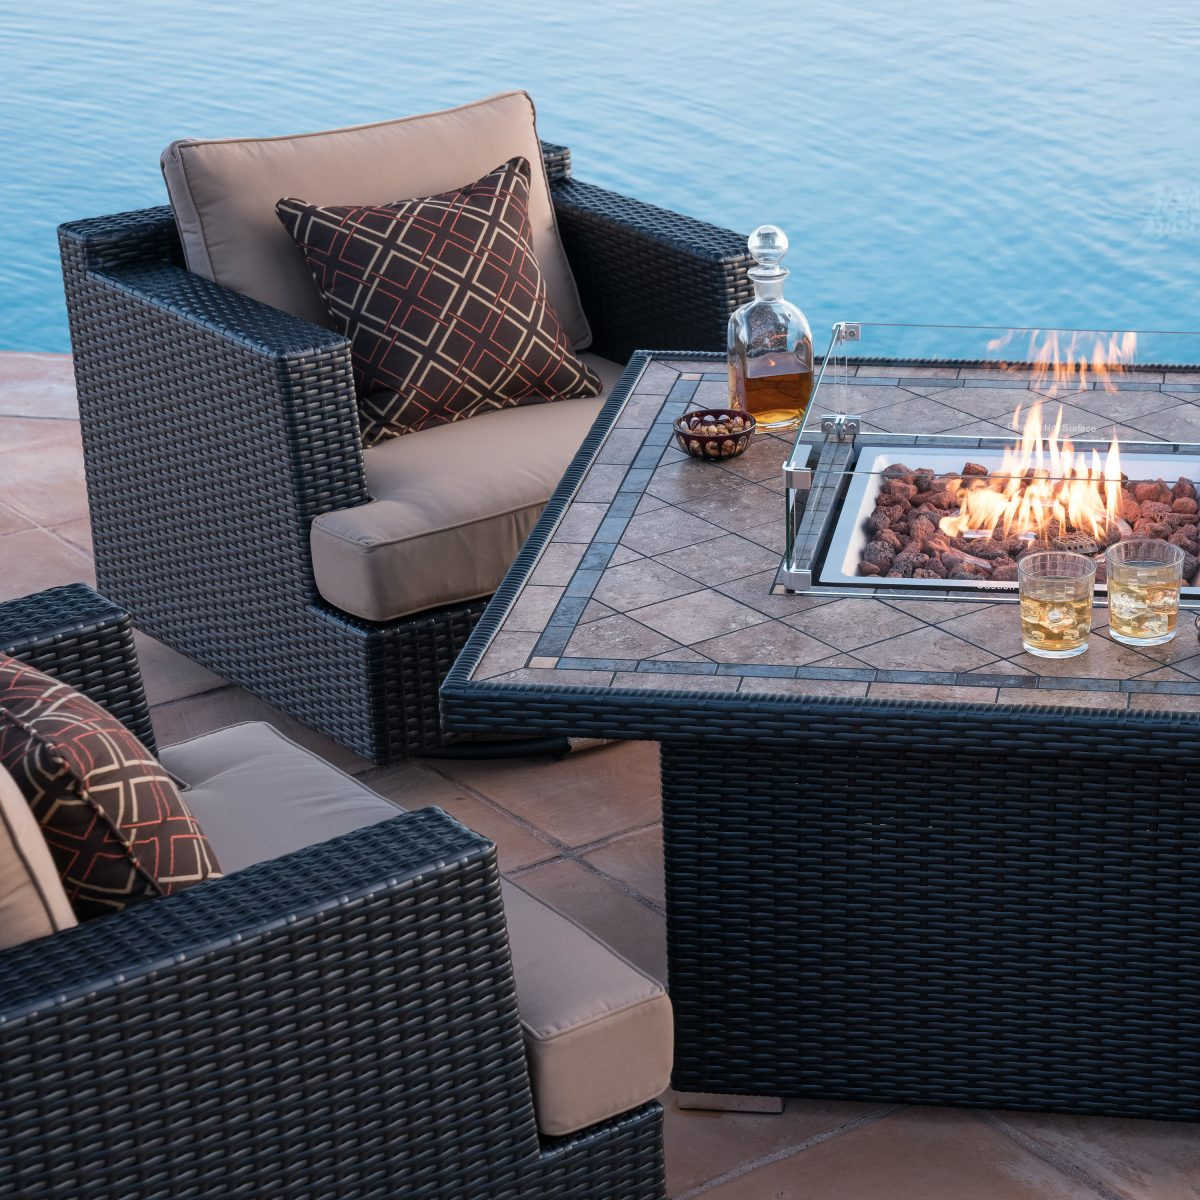 poolside seating ideas - fire table